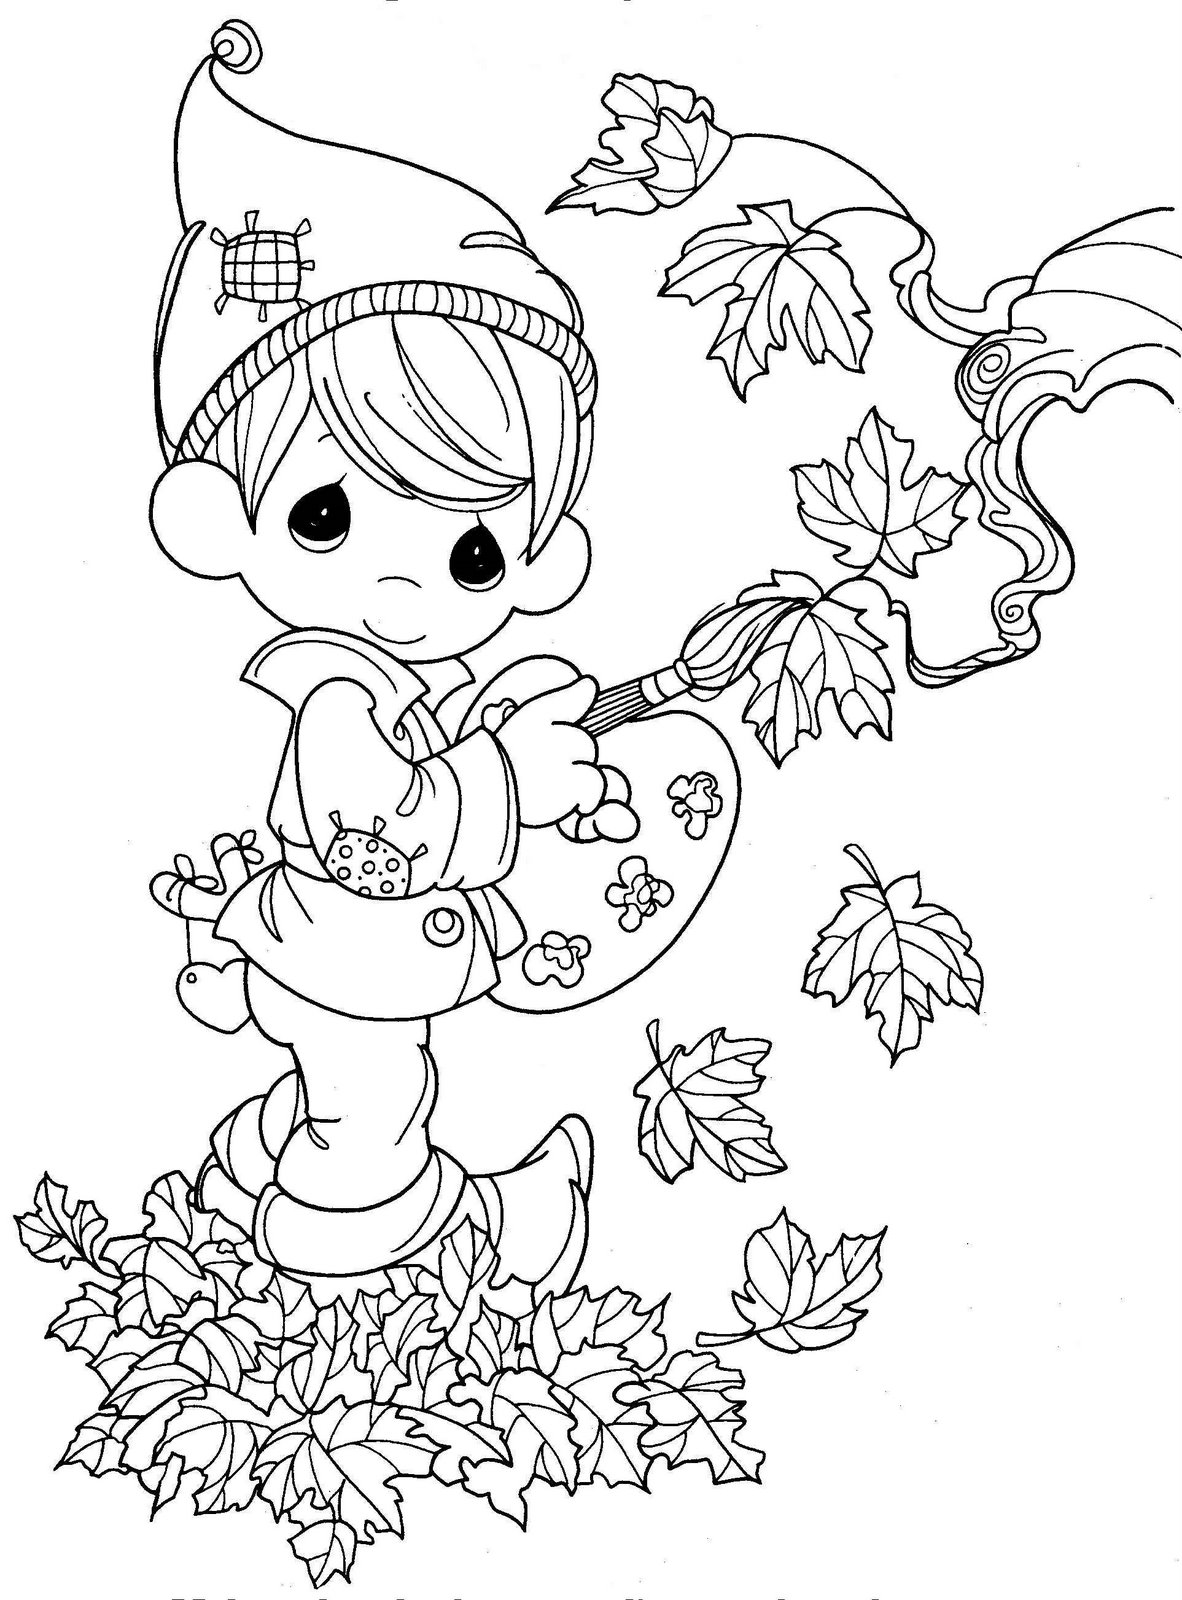 coloring pages with children - photo#7